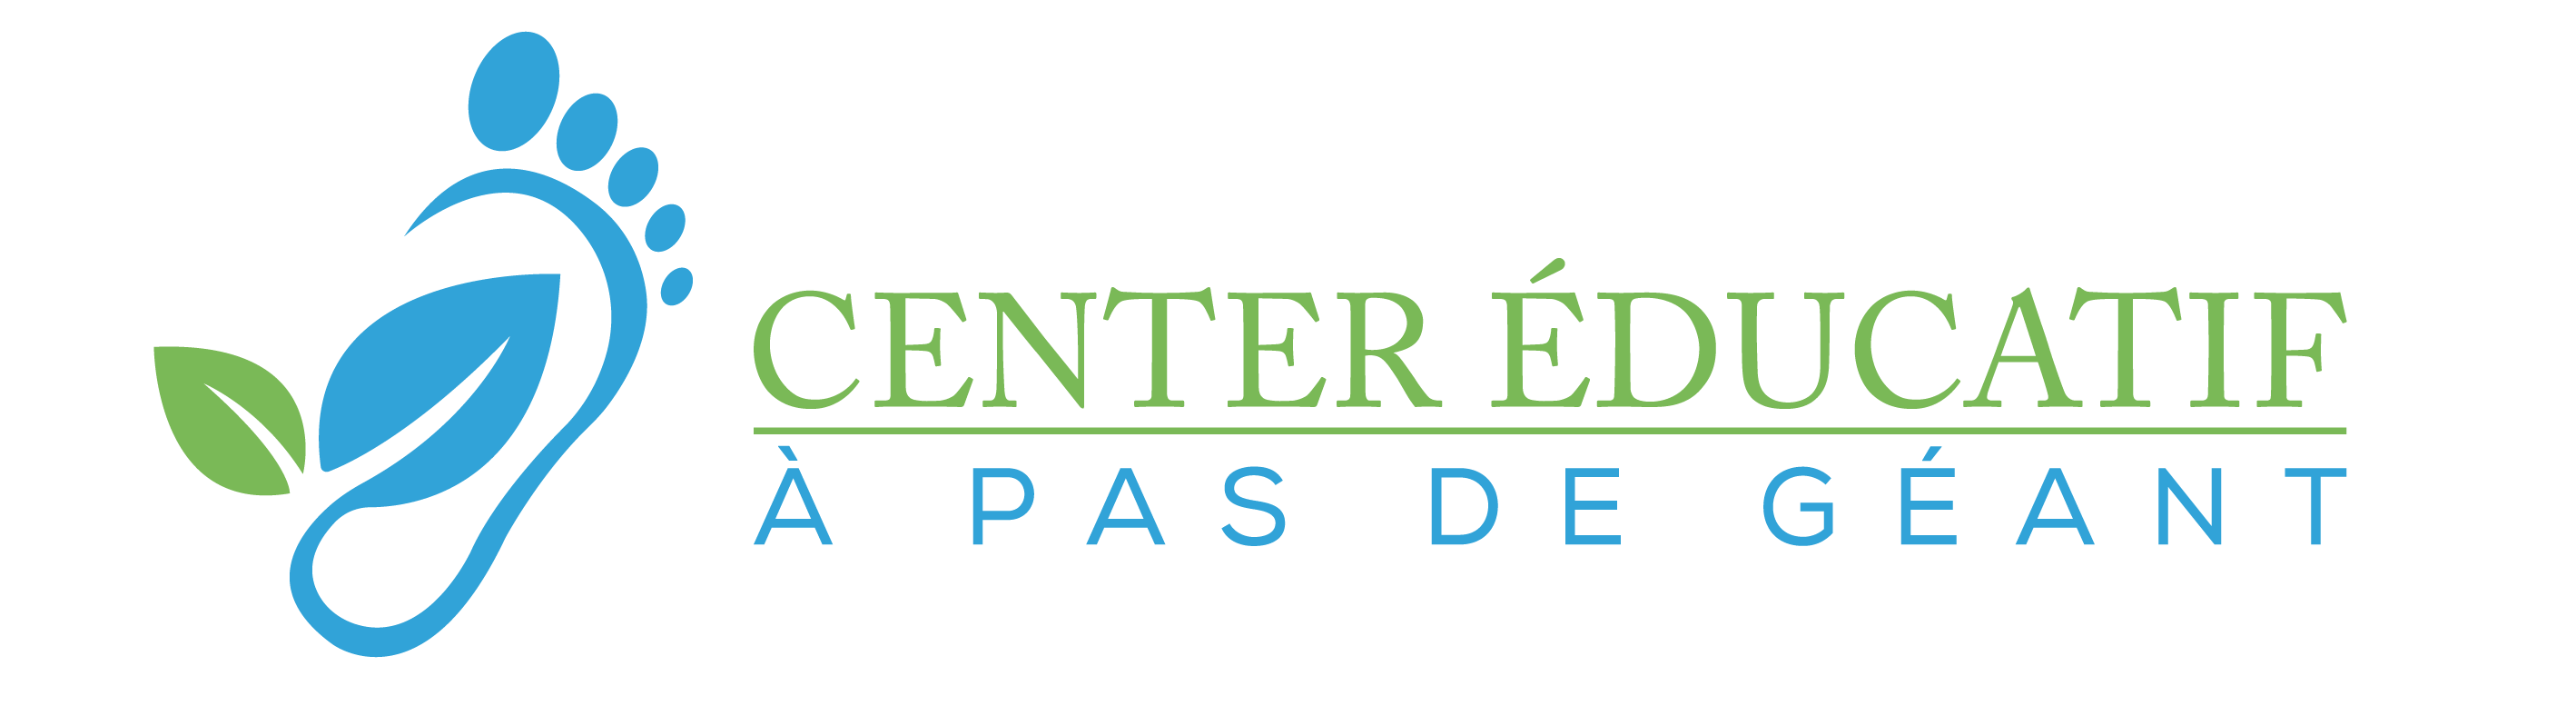 cropped-center-educatif-logo.png